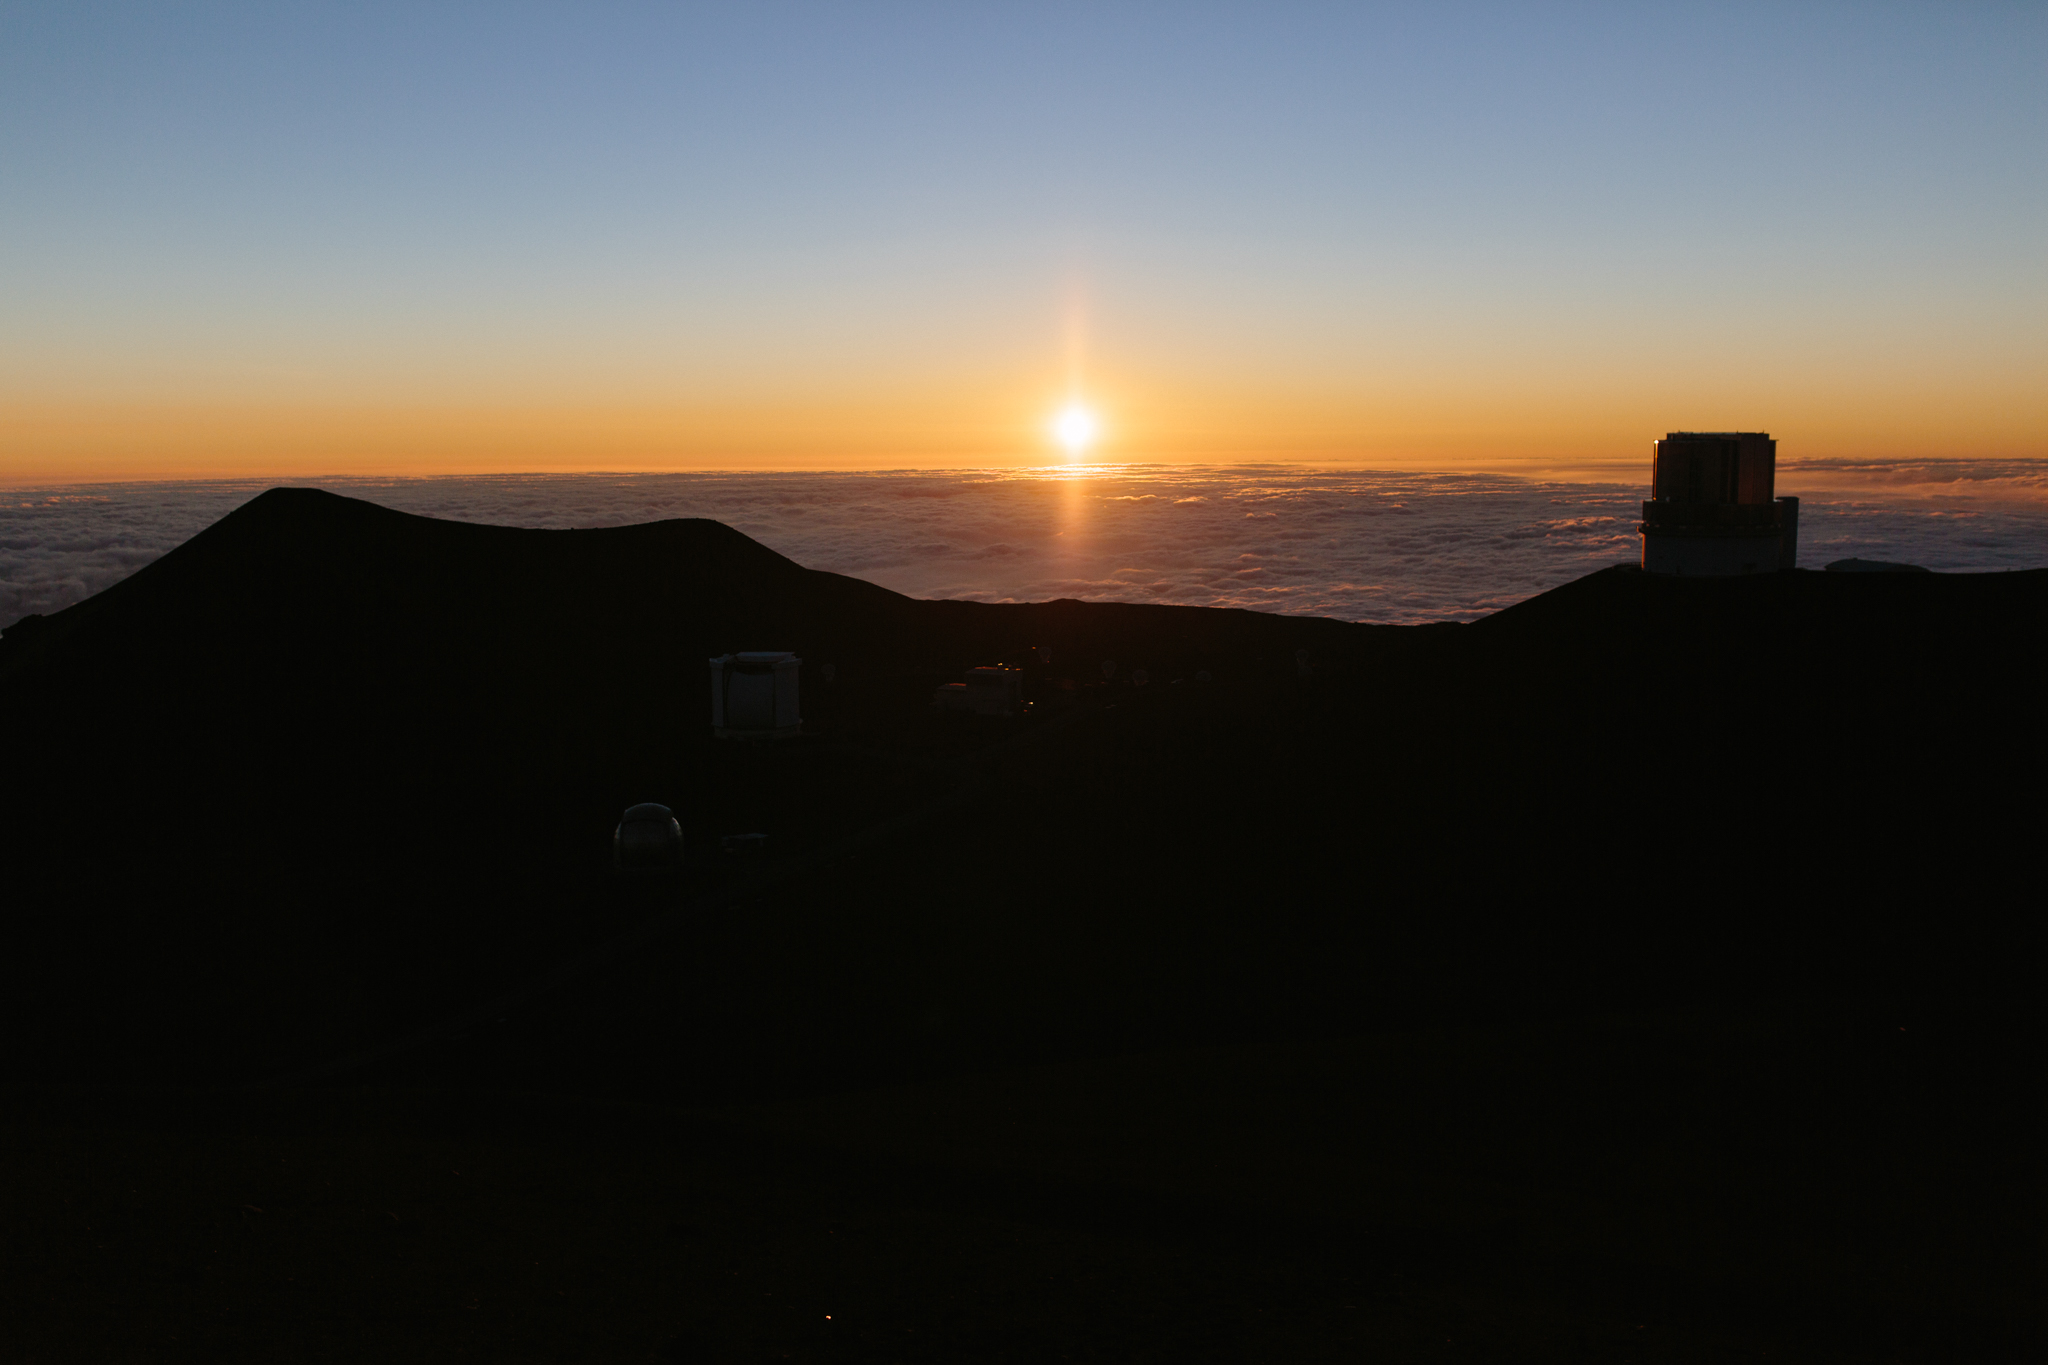 There's a timelapse of the sunset over Mauna Kea at the end of this post.